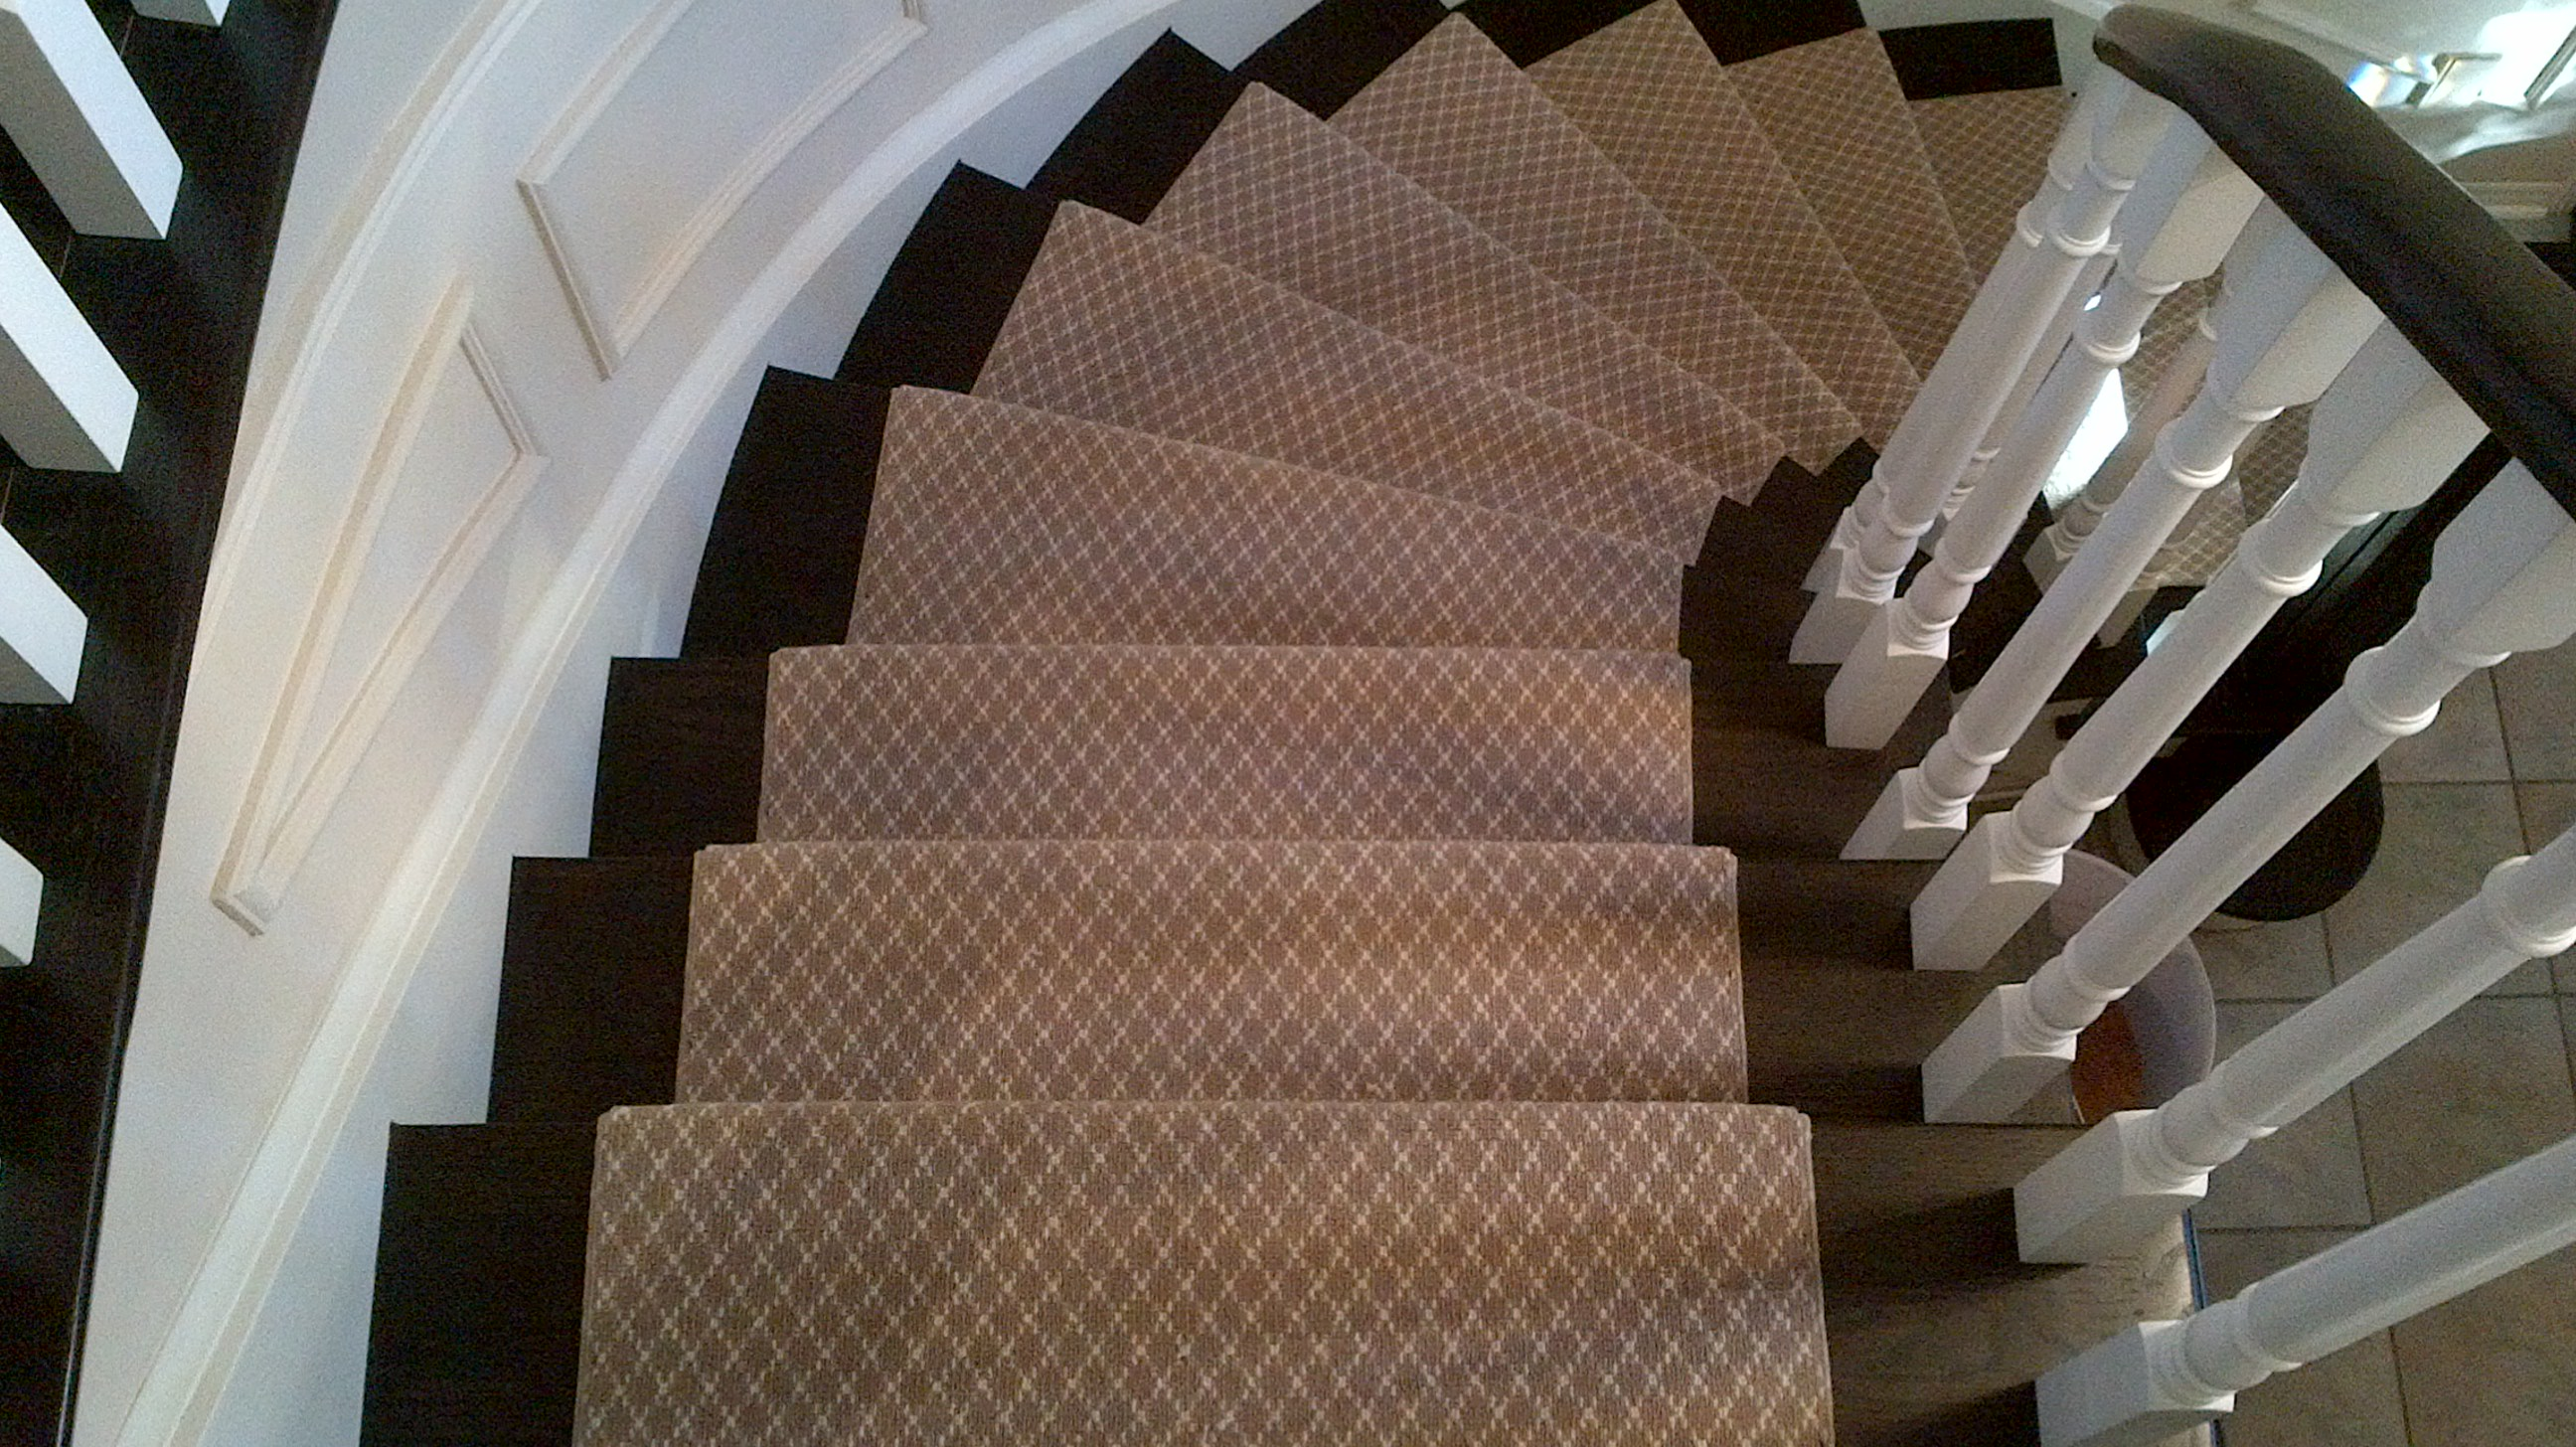 stair runner carpet hexagon design carpet style for stairscase runner stair runner for curved stairs